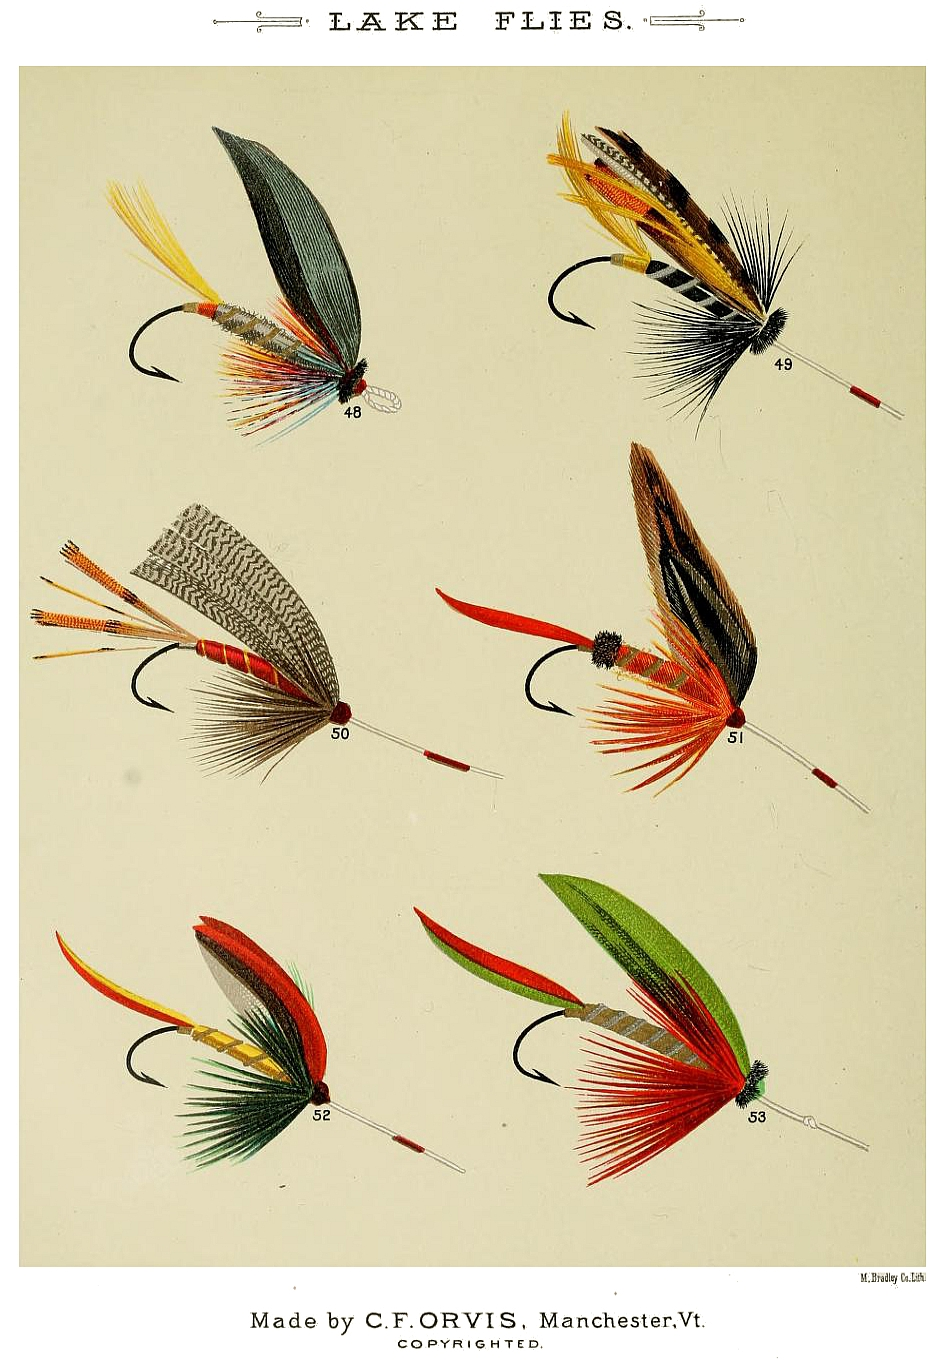 48. Hart – 49. Hill Fly – 50. Kingfisher – 51. Golden Rod – 52. King of the Woods – 53. Green Glade